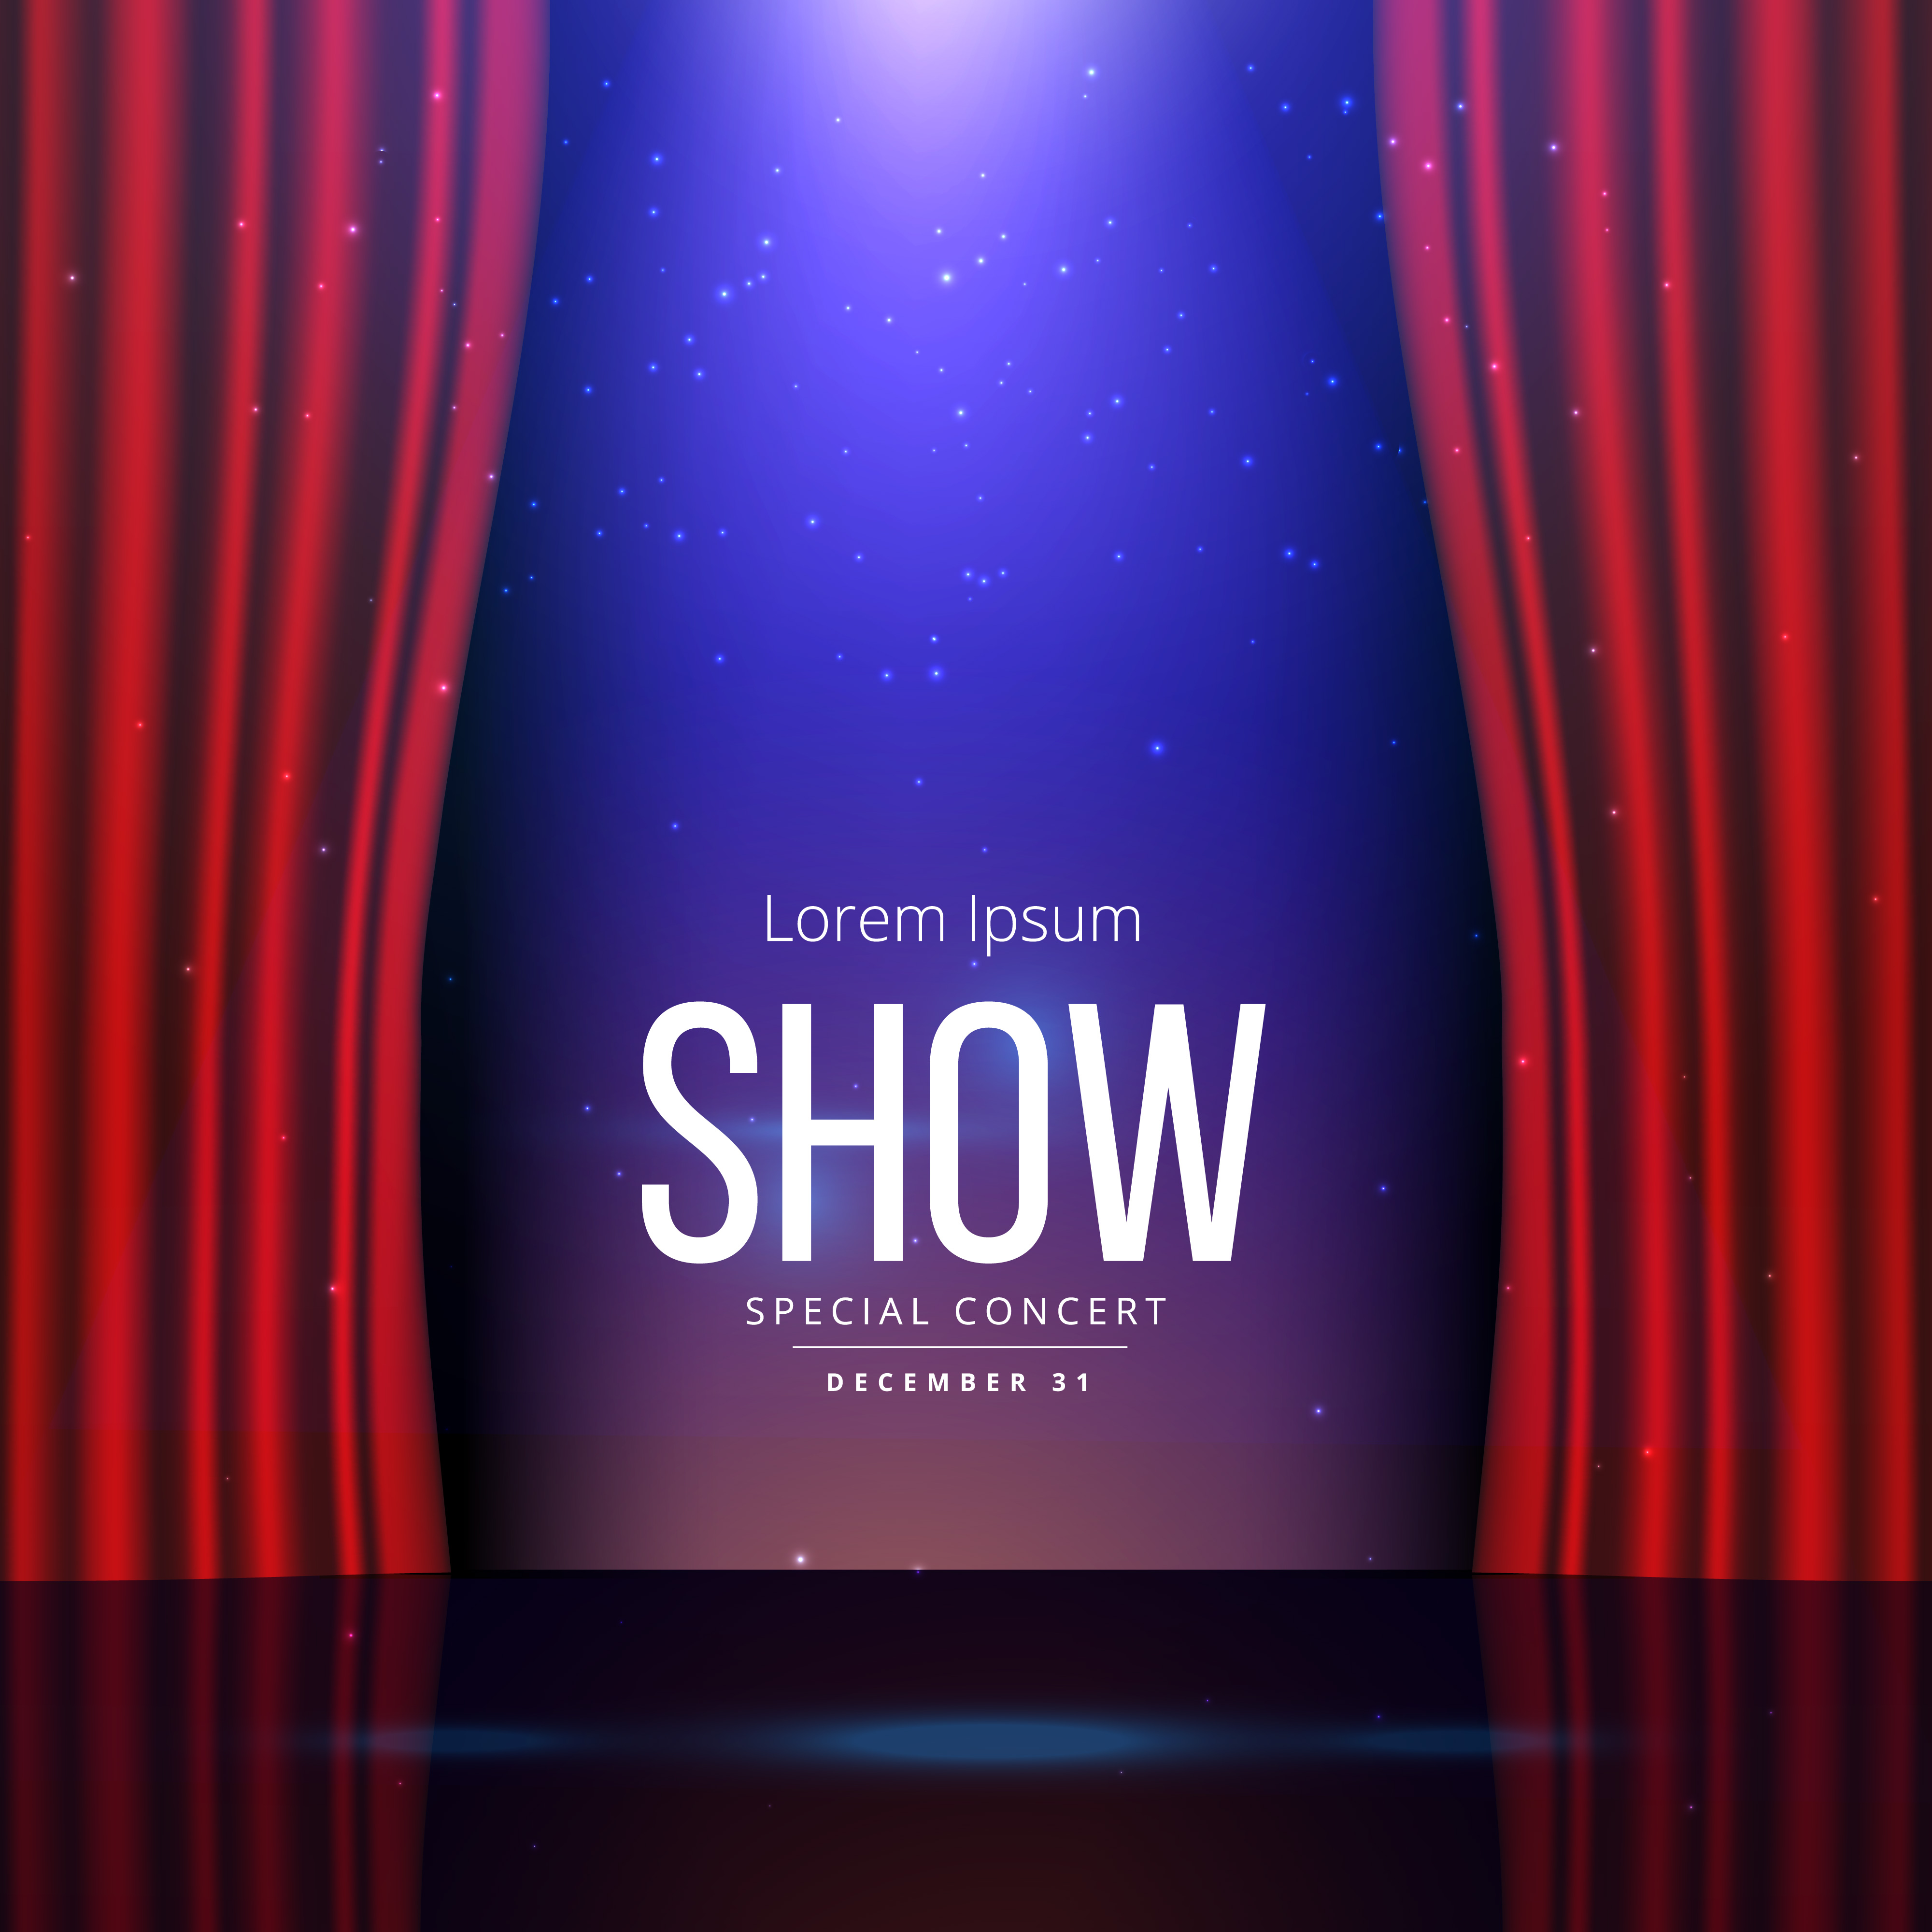 theater stage with open curtains - Download Free Vector Art, Stock ...